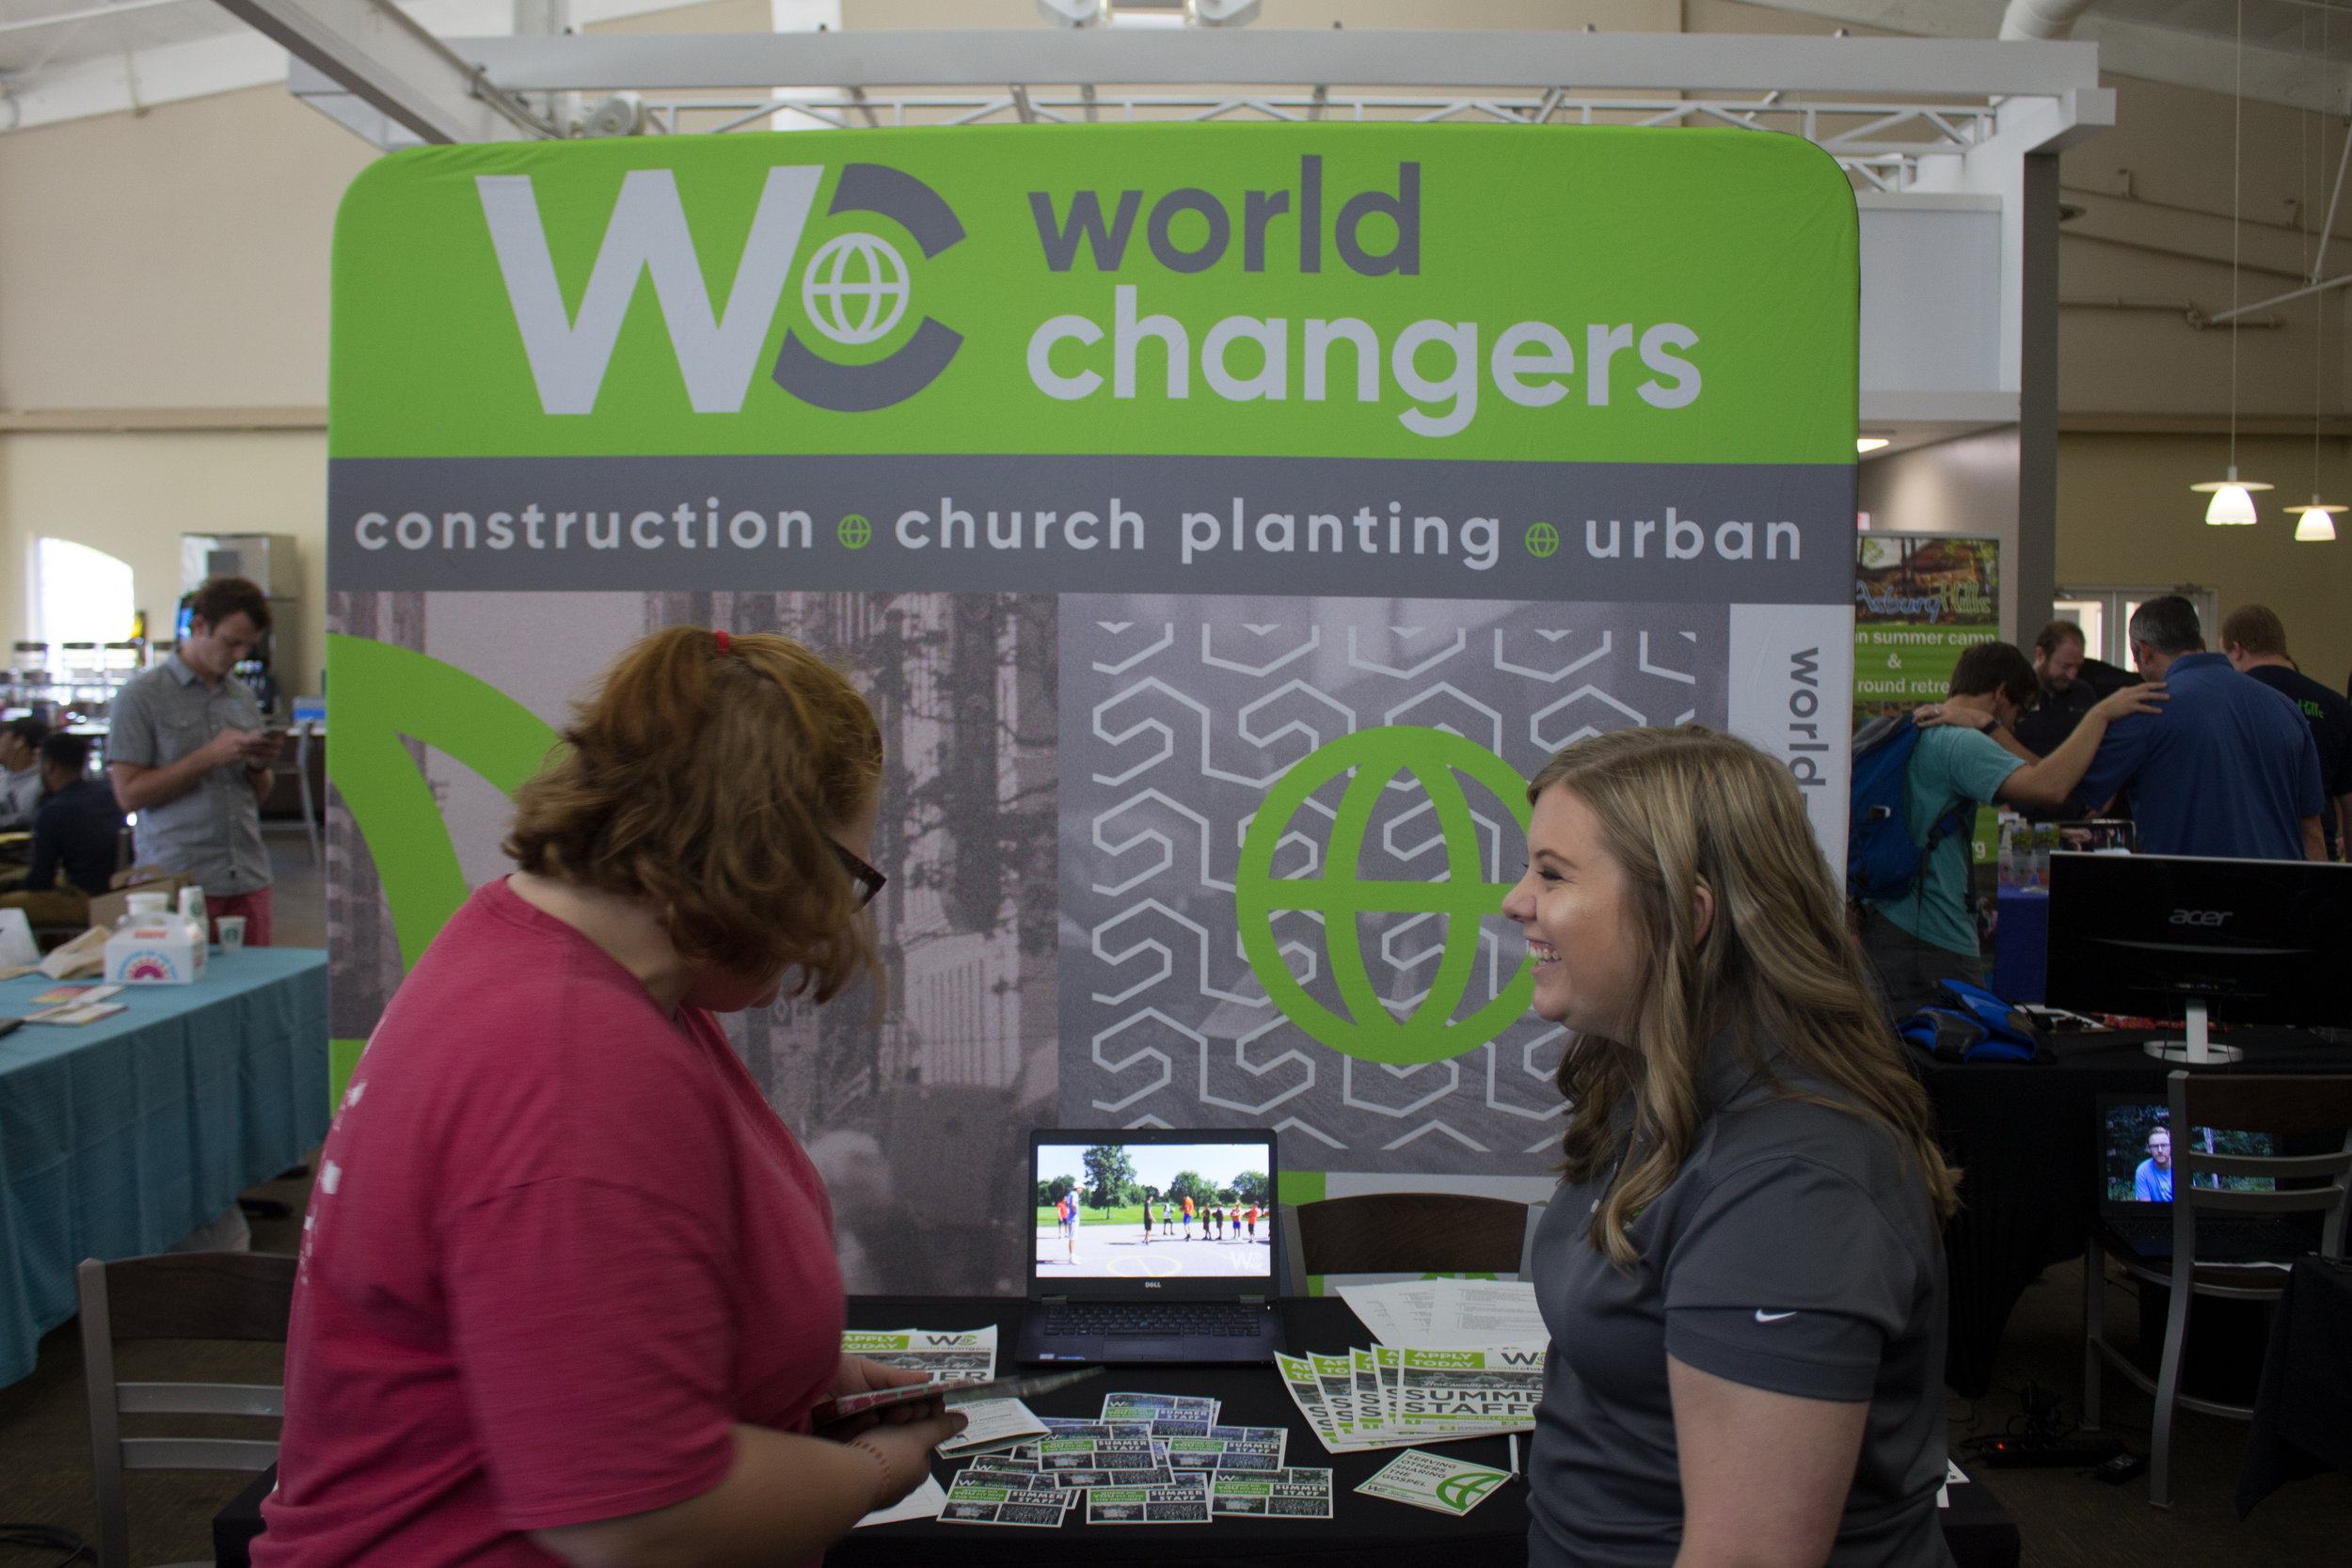 Former NGU student and program specialist, Megan Conley, recruiting North Greenville University students for world changers.